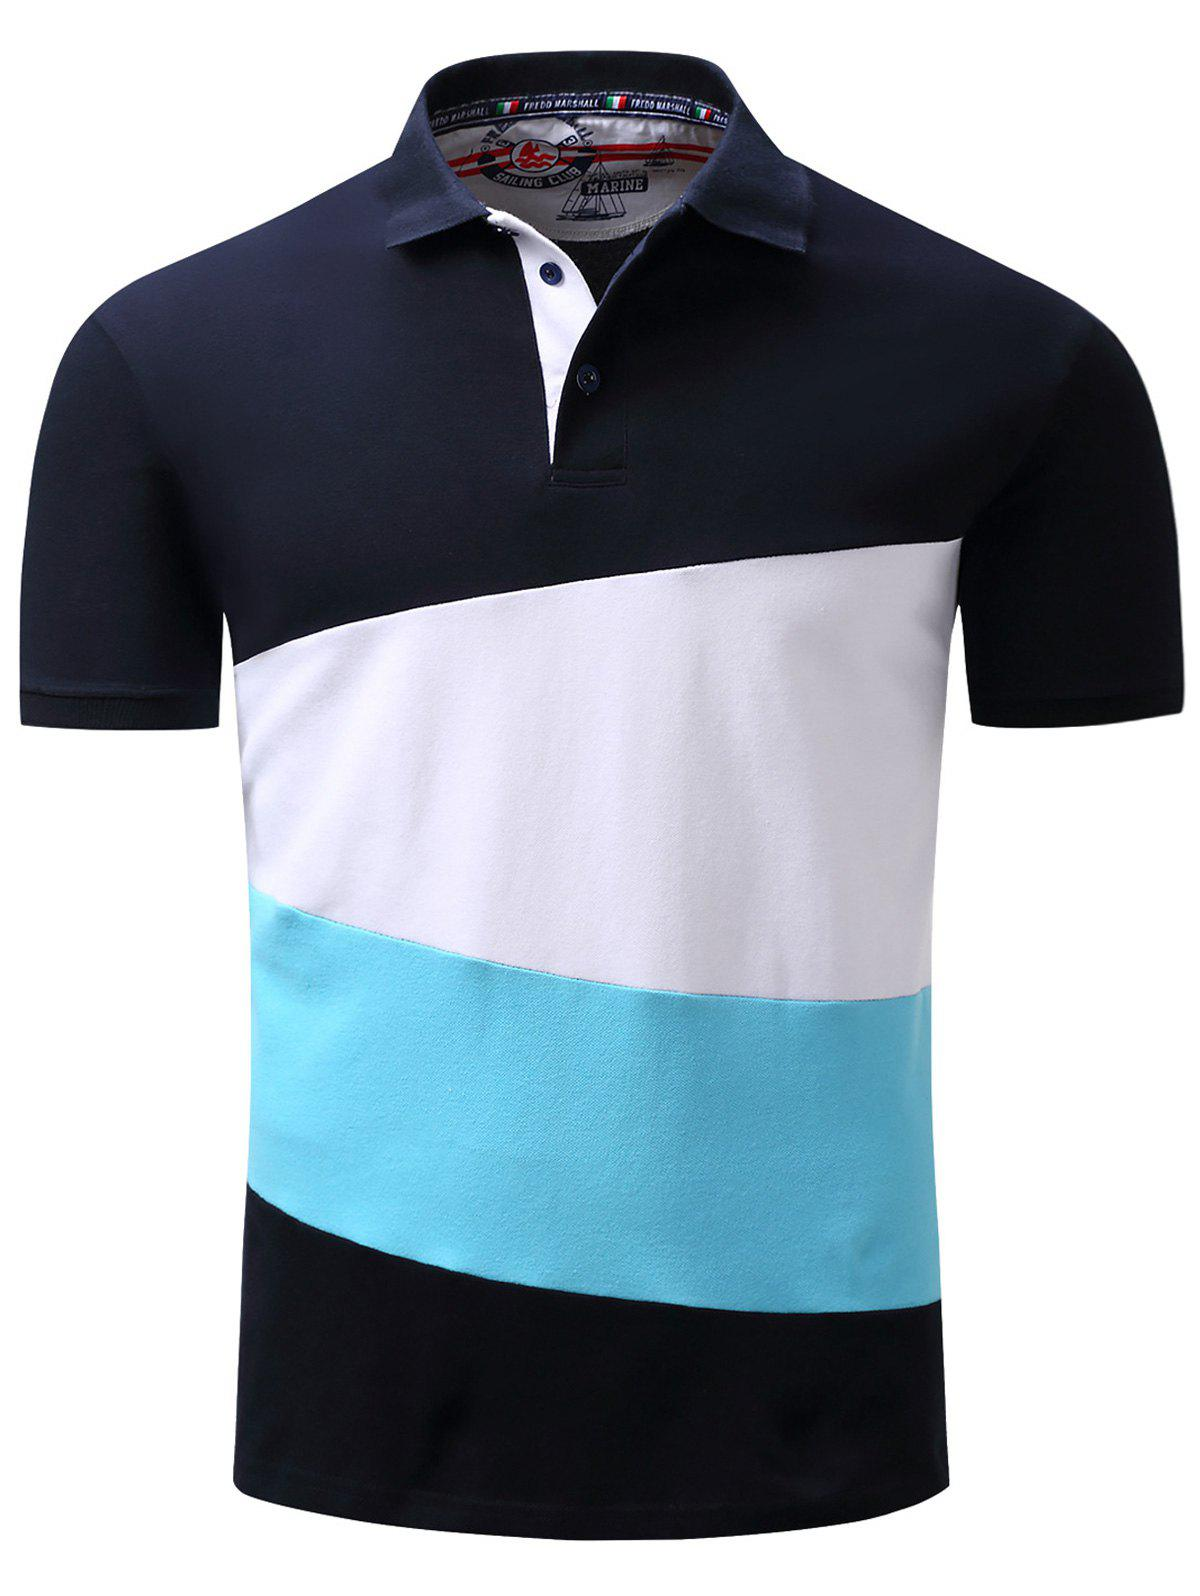 2018 polo collar color block panel design t shirt deep for Polo color block shirt